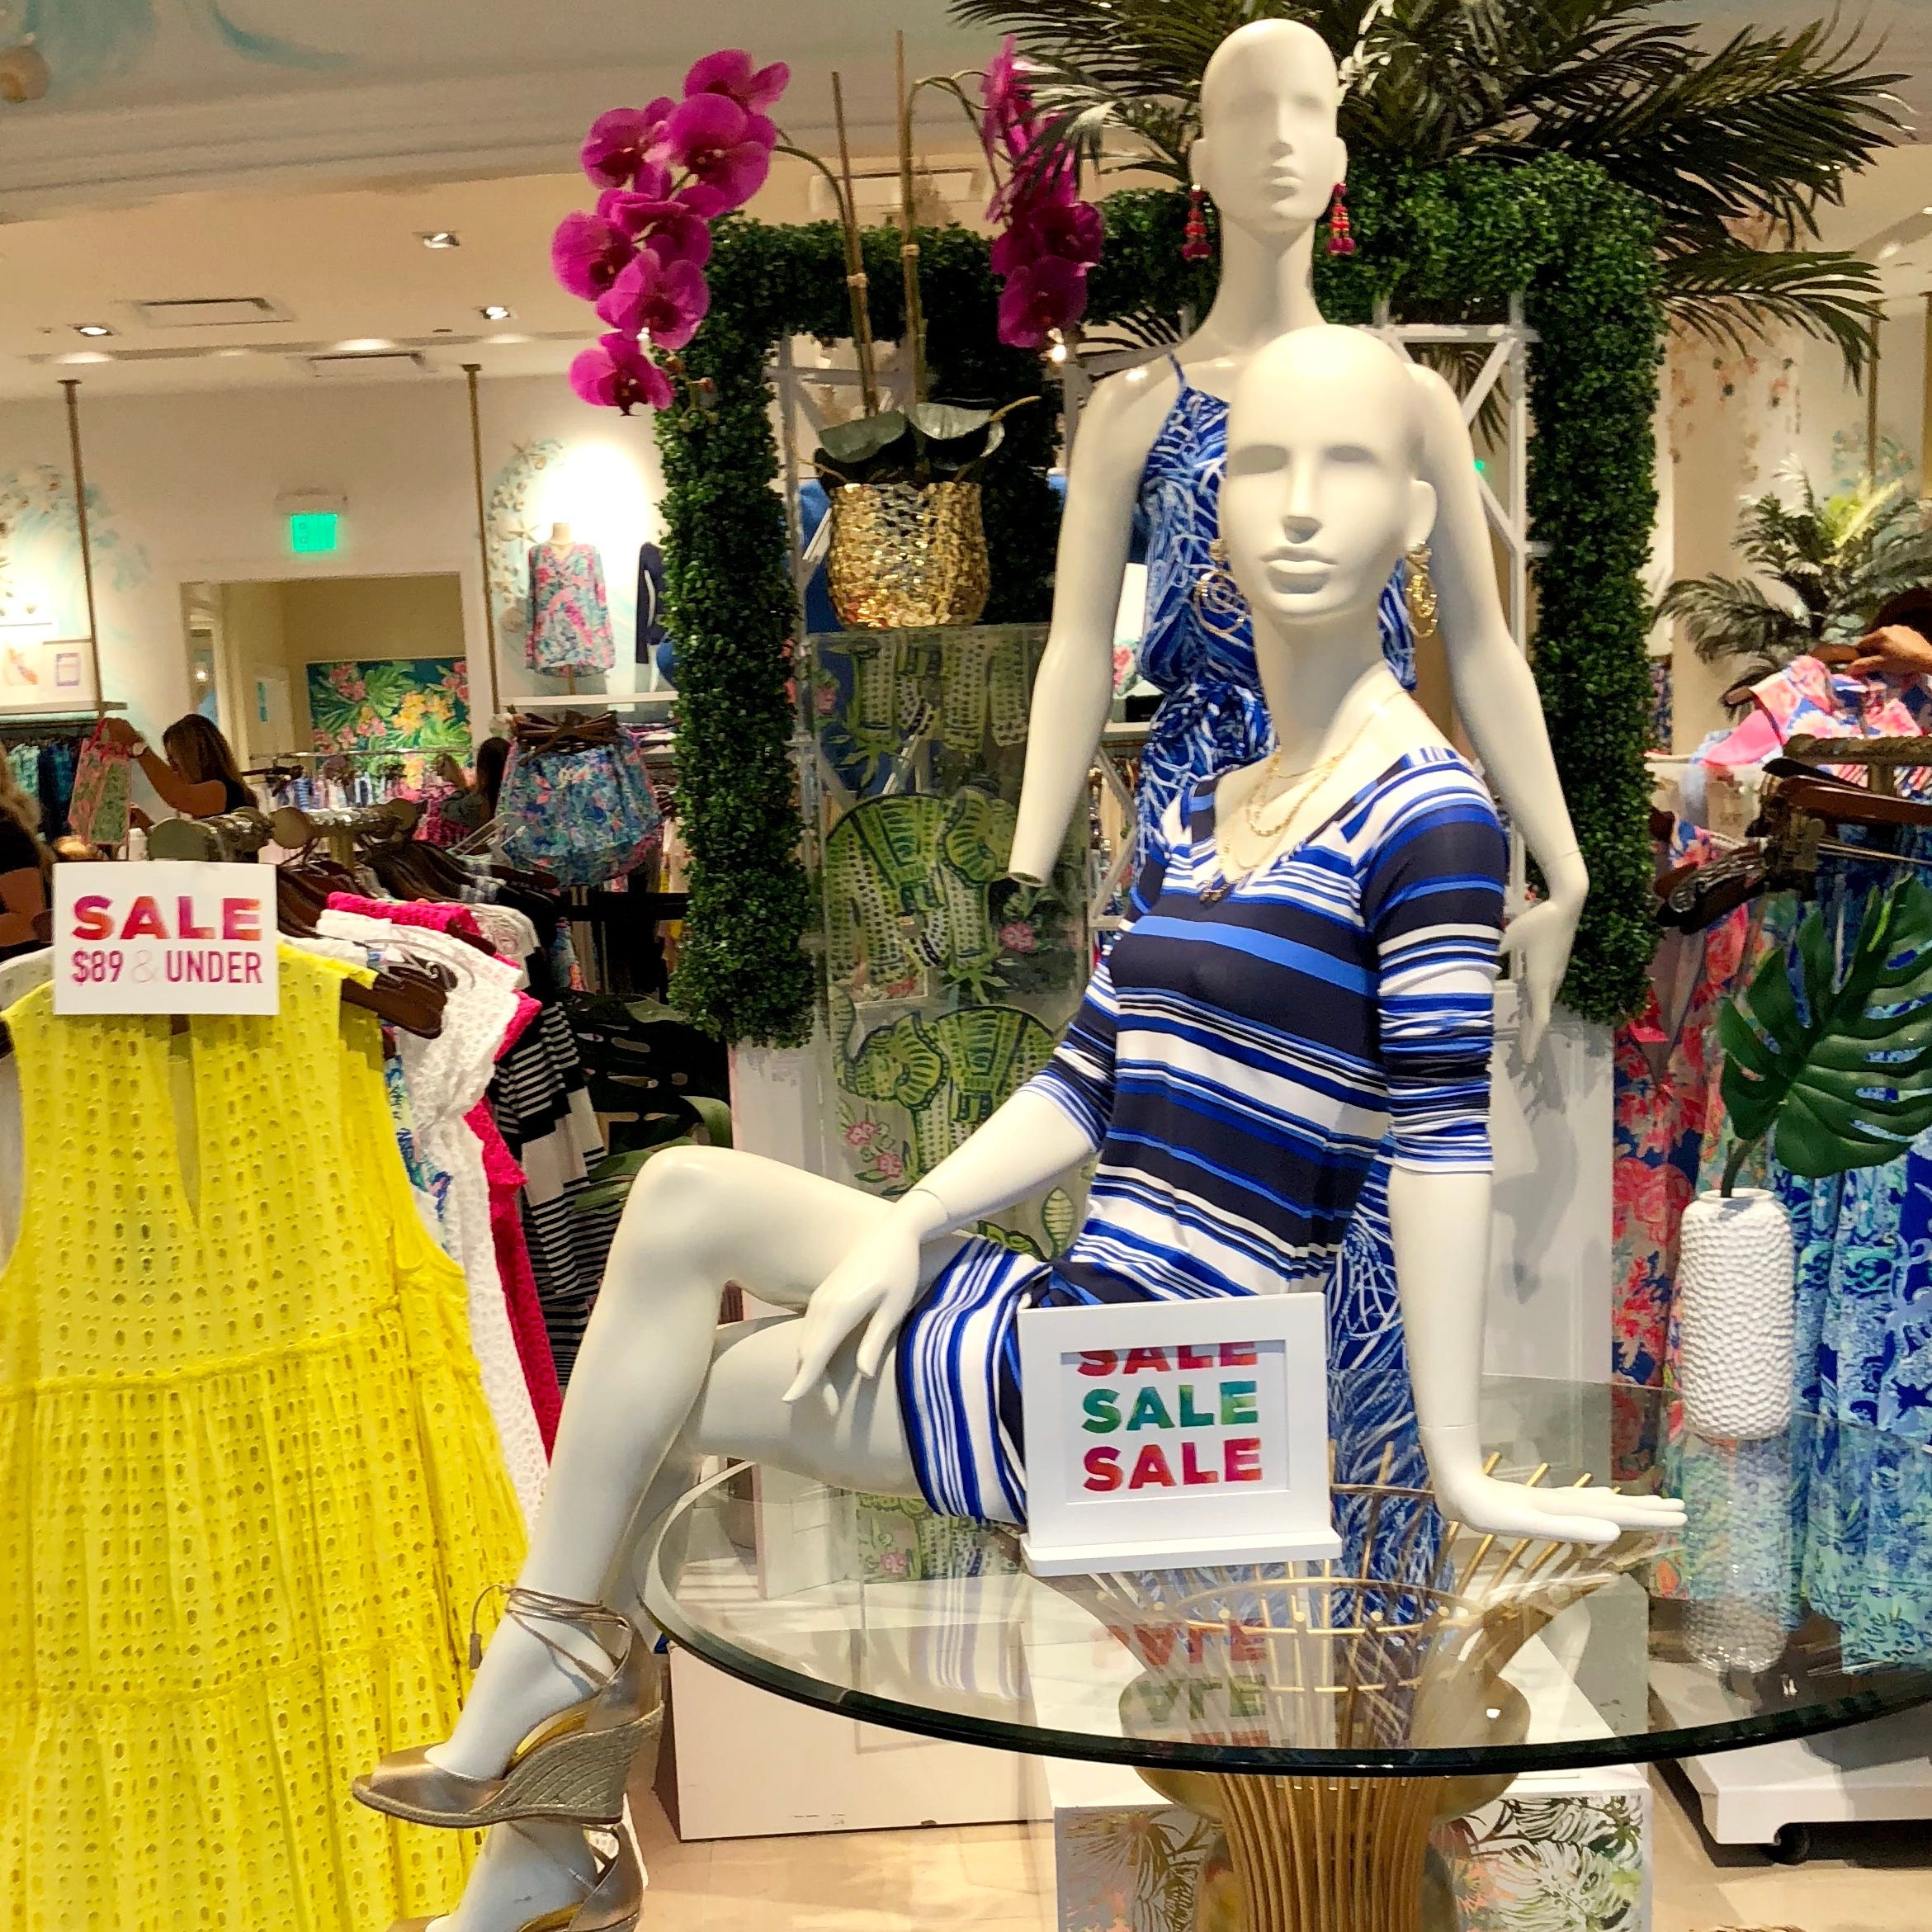 Lilly Pulitzer's popular 'After Party Sale' continues through Wednesday